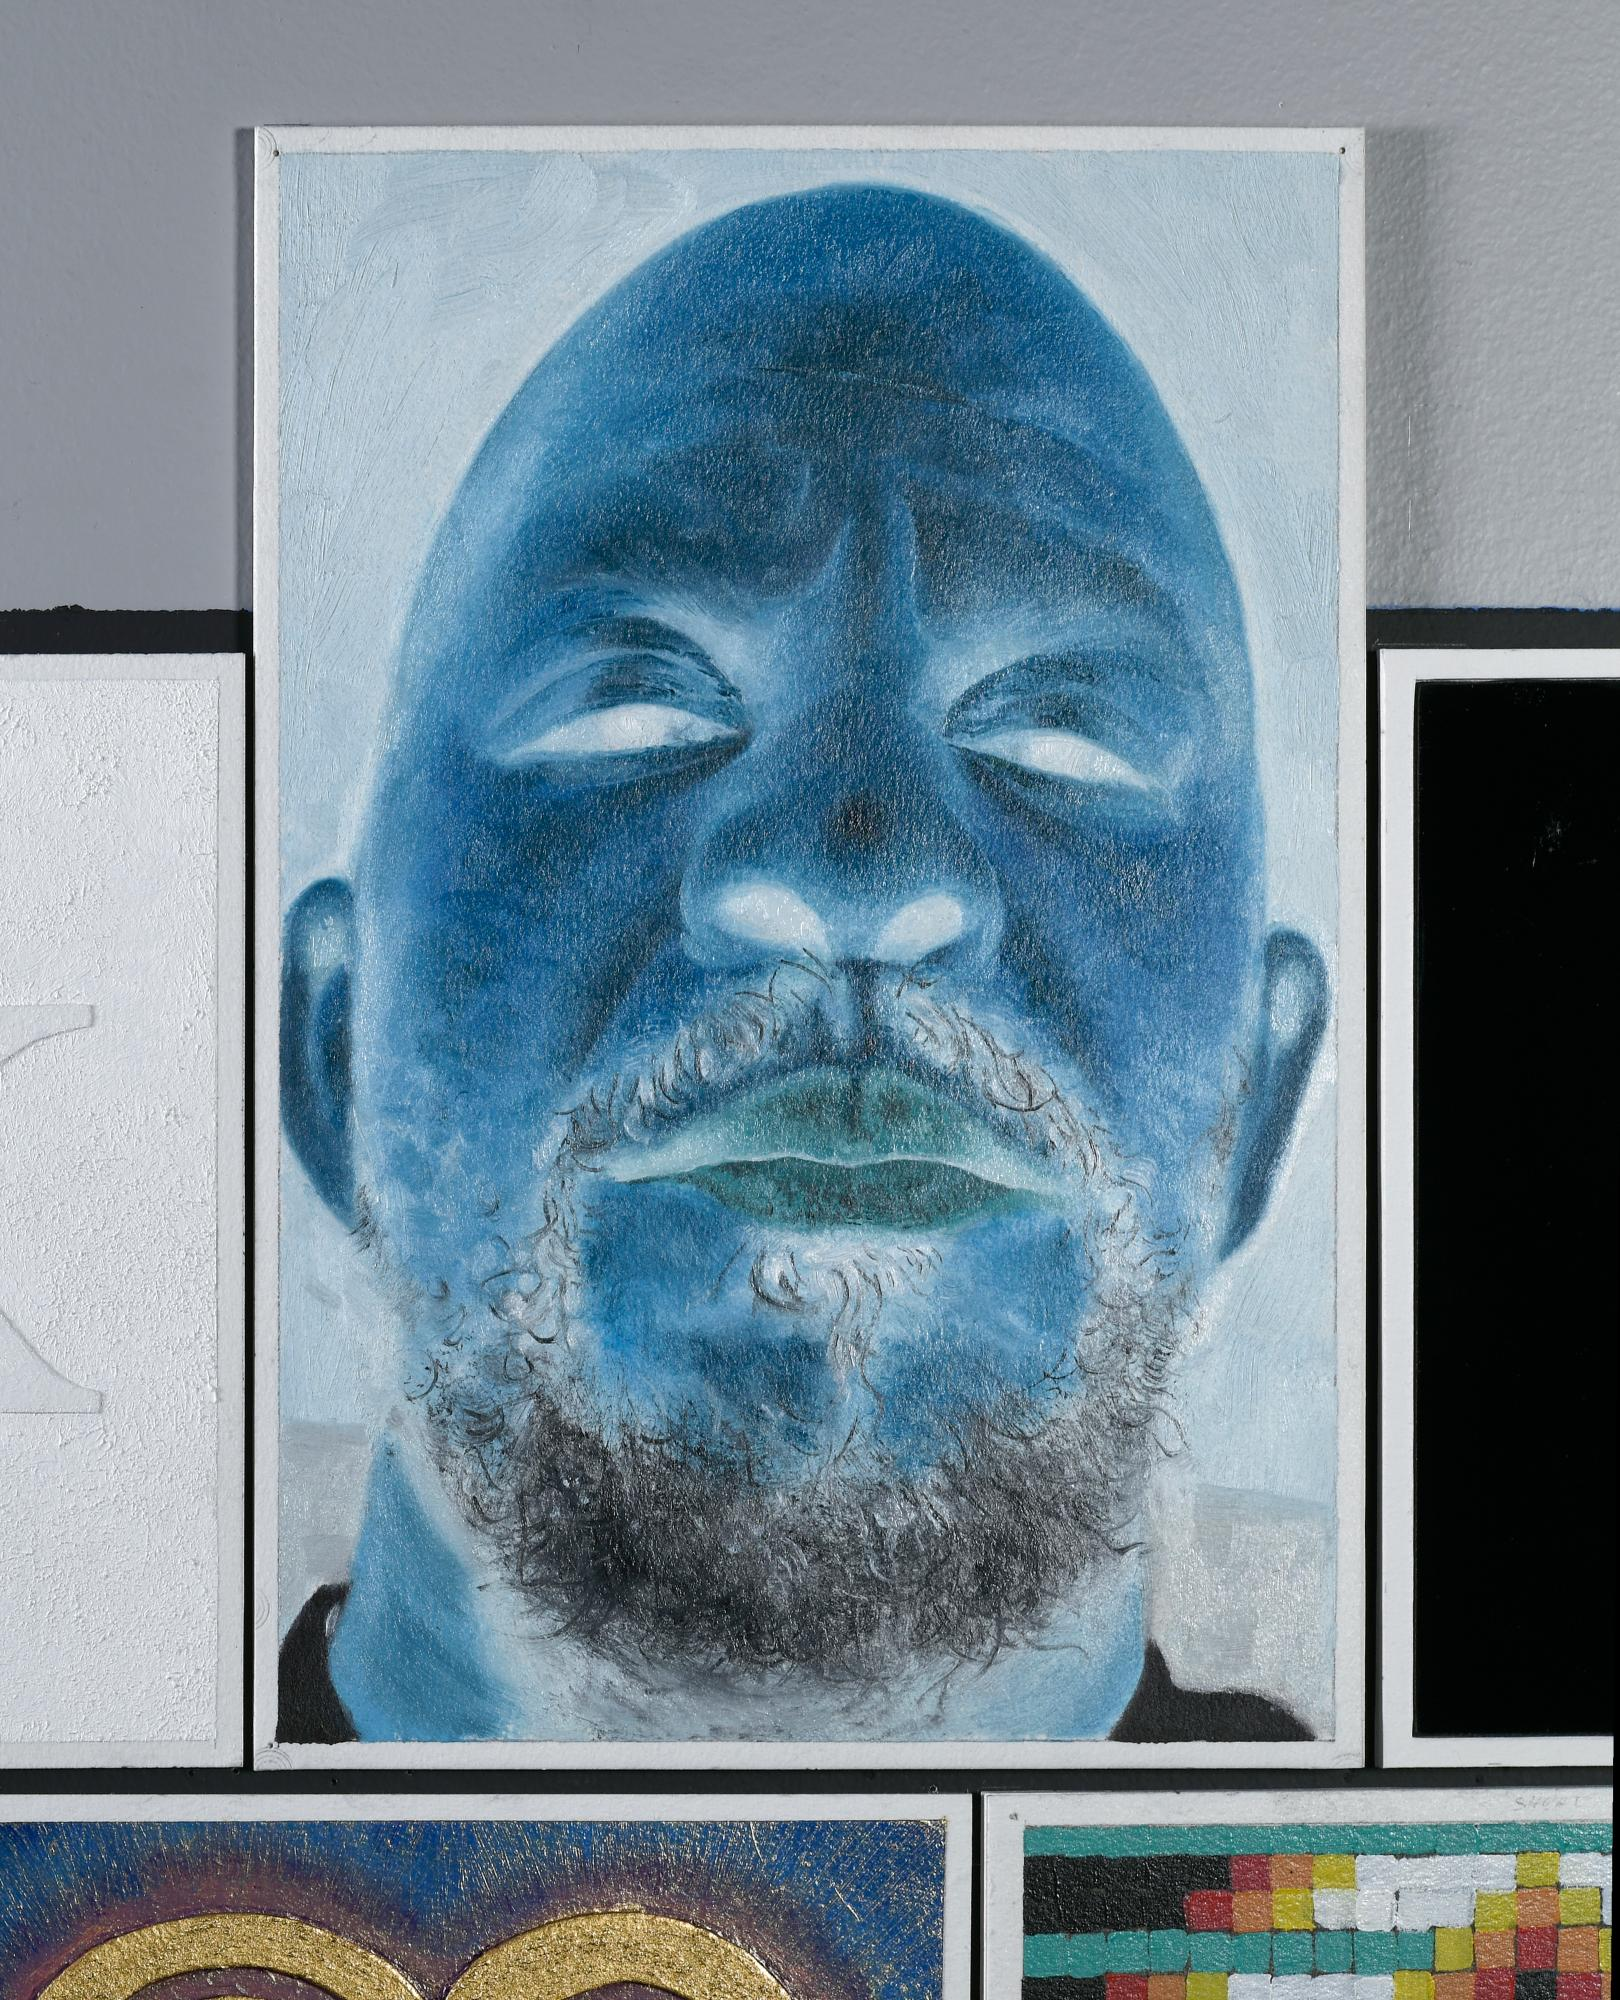 Michael Herbert Dorn (color-inverted)